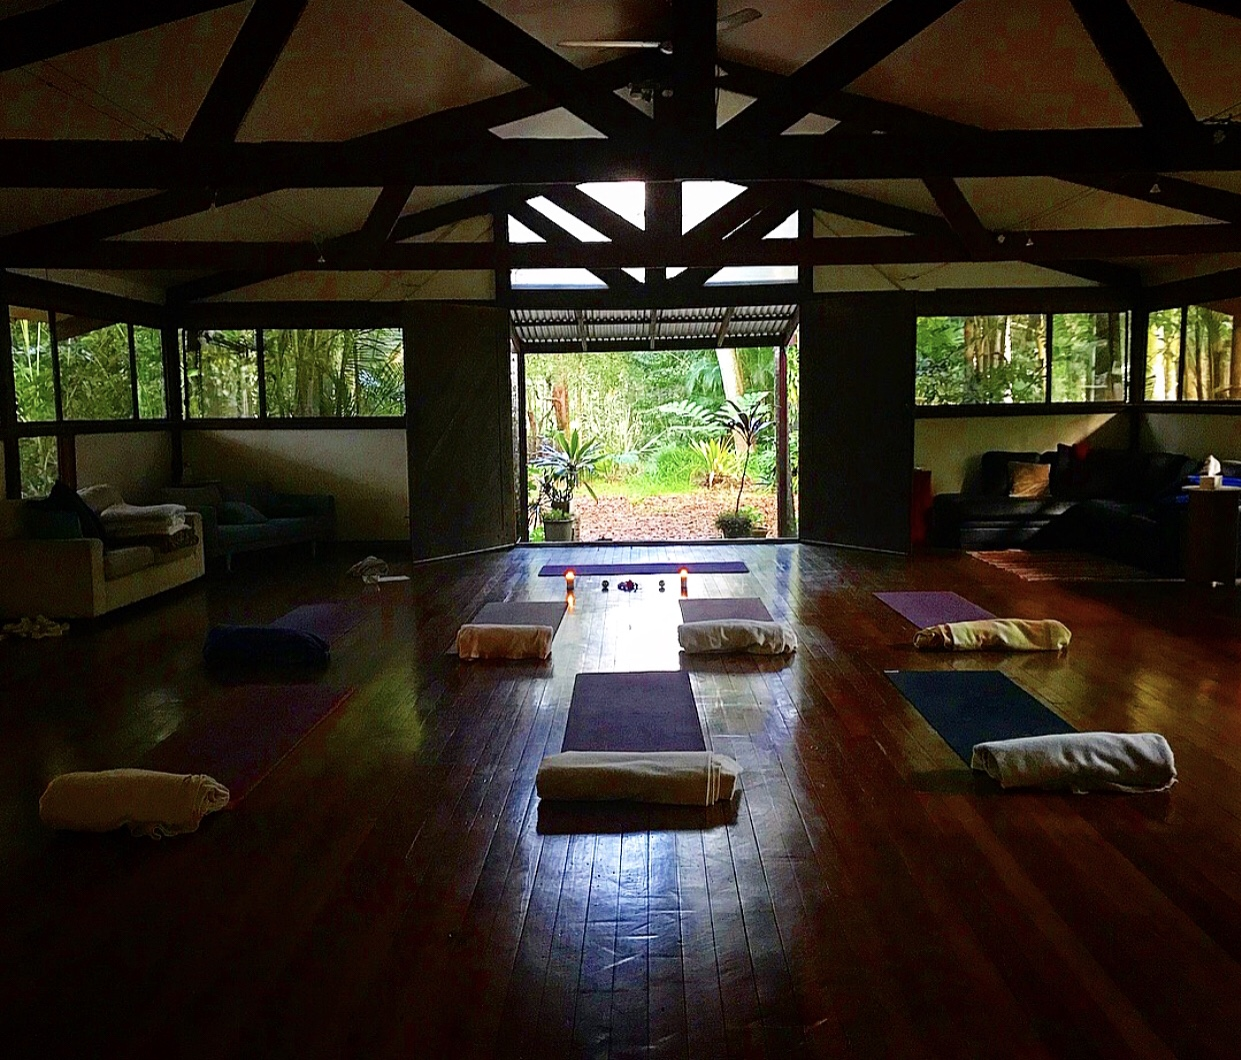 The beautiful yoga hall surrounded by nature.